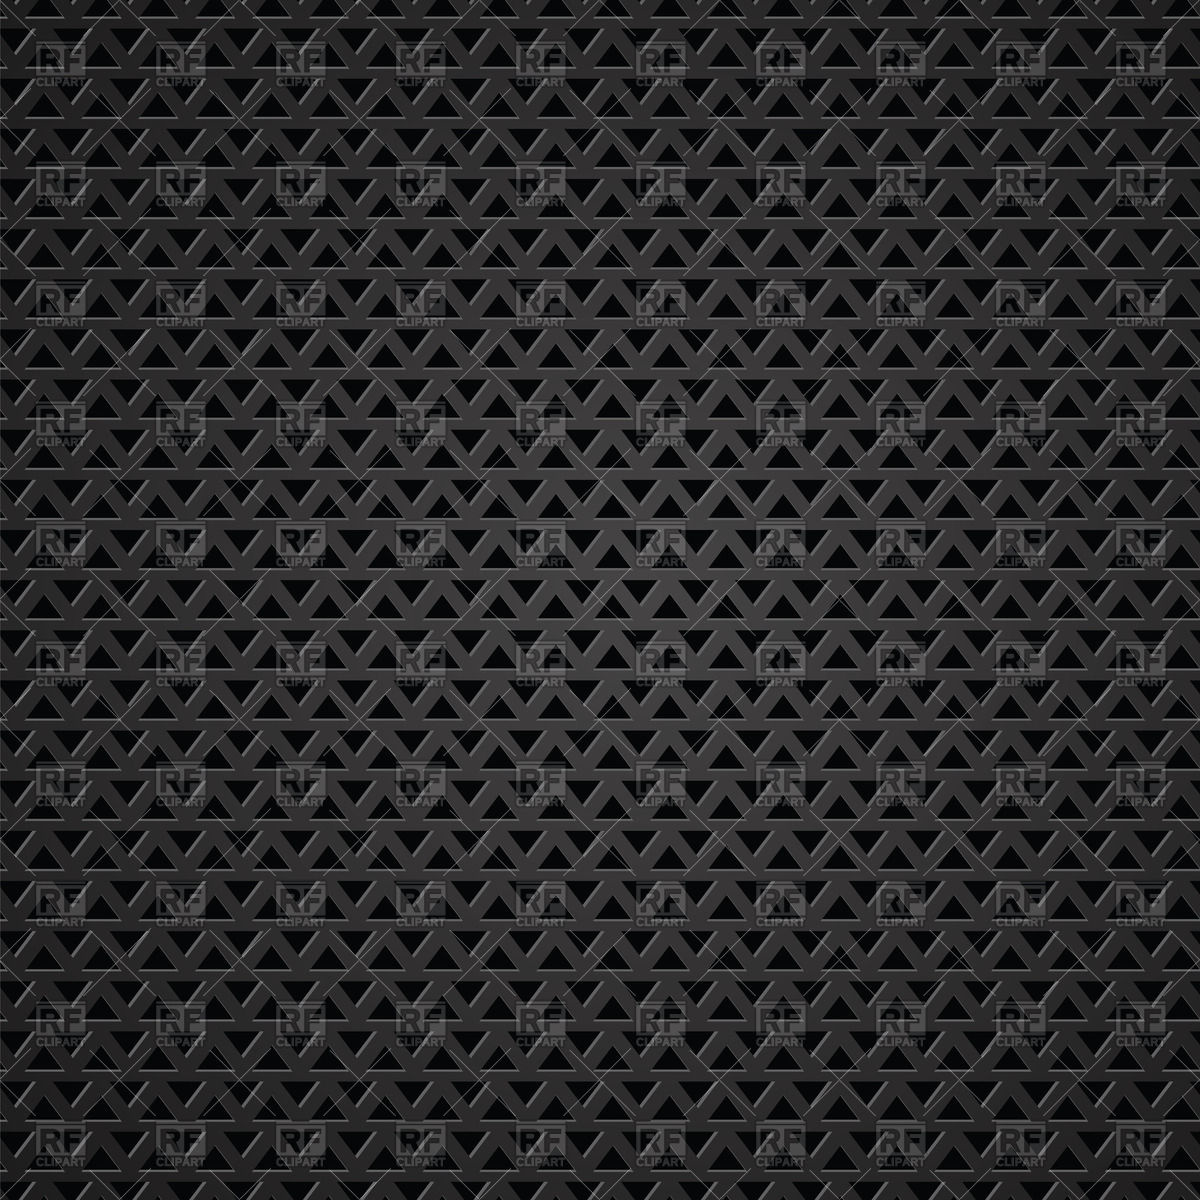 Abstract geometric dark background Vector Image #63769.